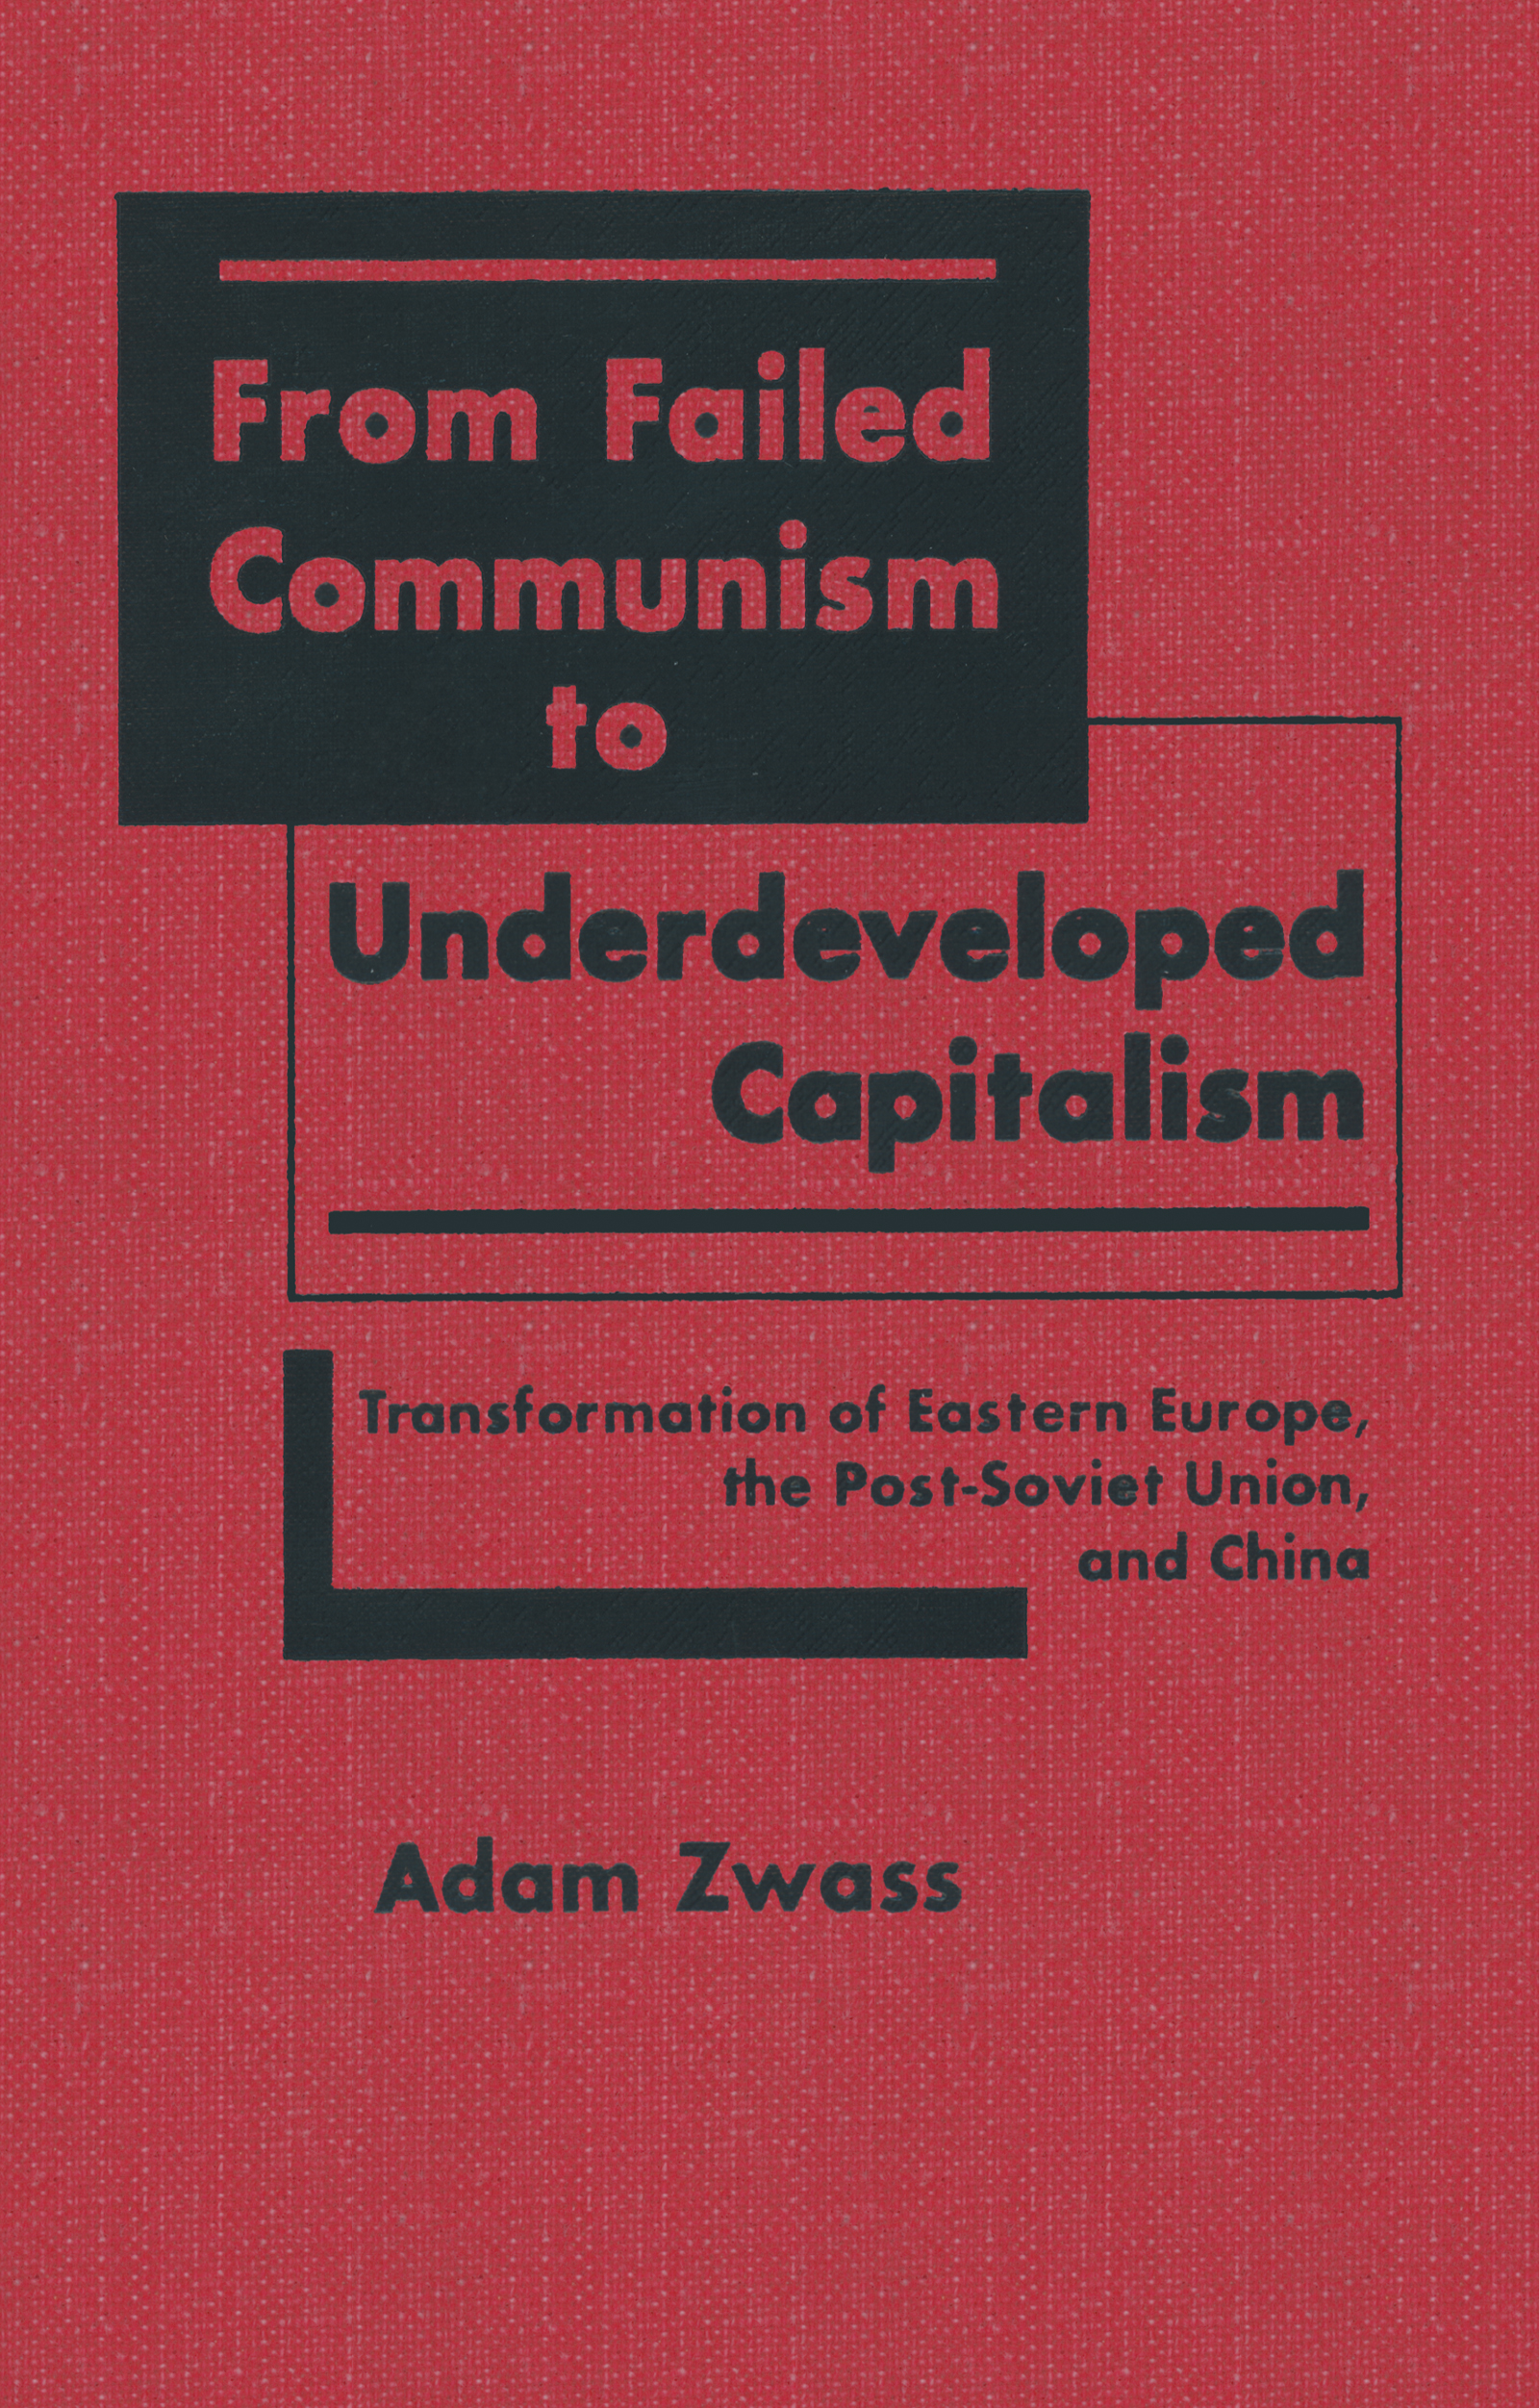 From Failed Communism to Underdeveloped Capitalism: Transformation of Eastern Europe, the Post-Soviet Union and China: Transformation of Eastern Europe, the Post-Soviet Union and China, 1st Edition (Hardback) book cover